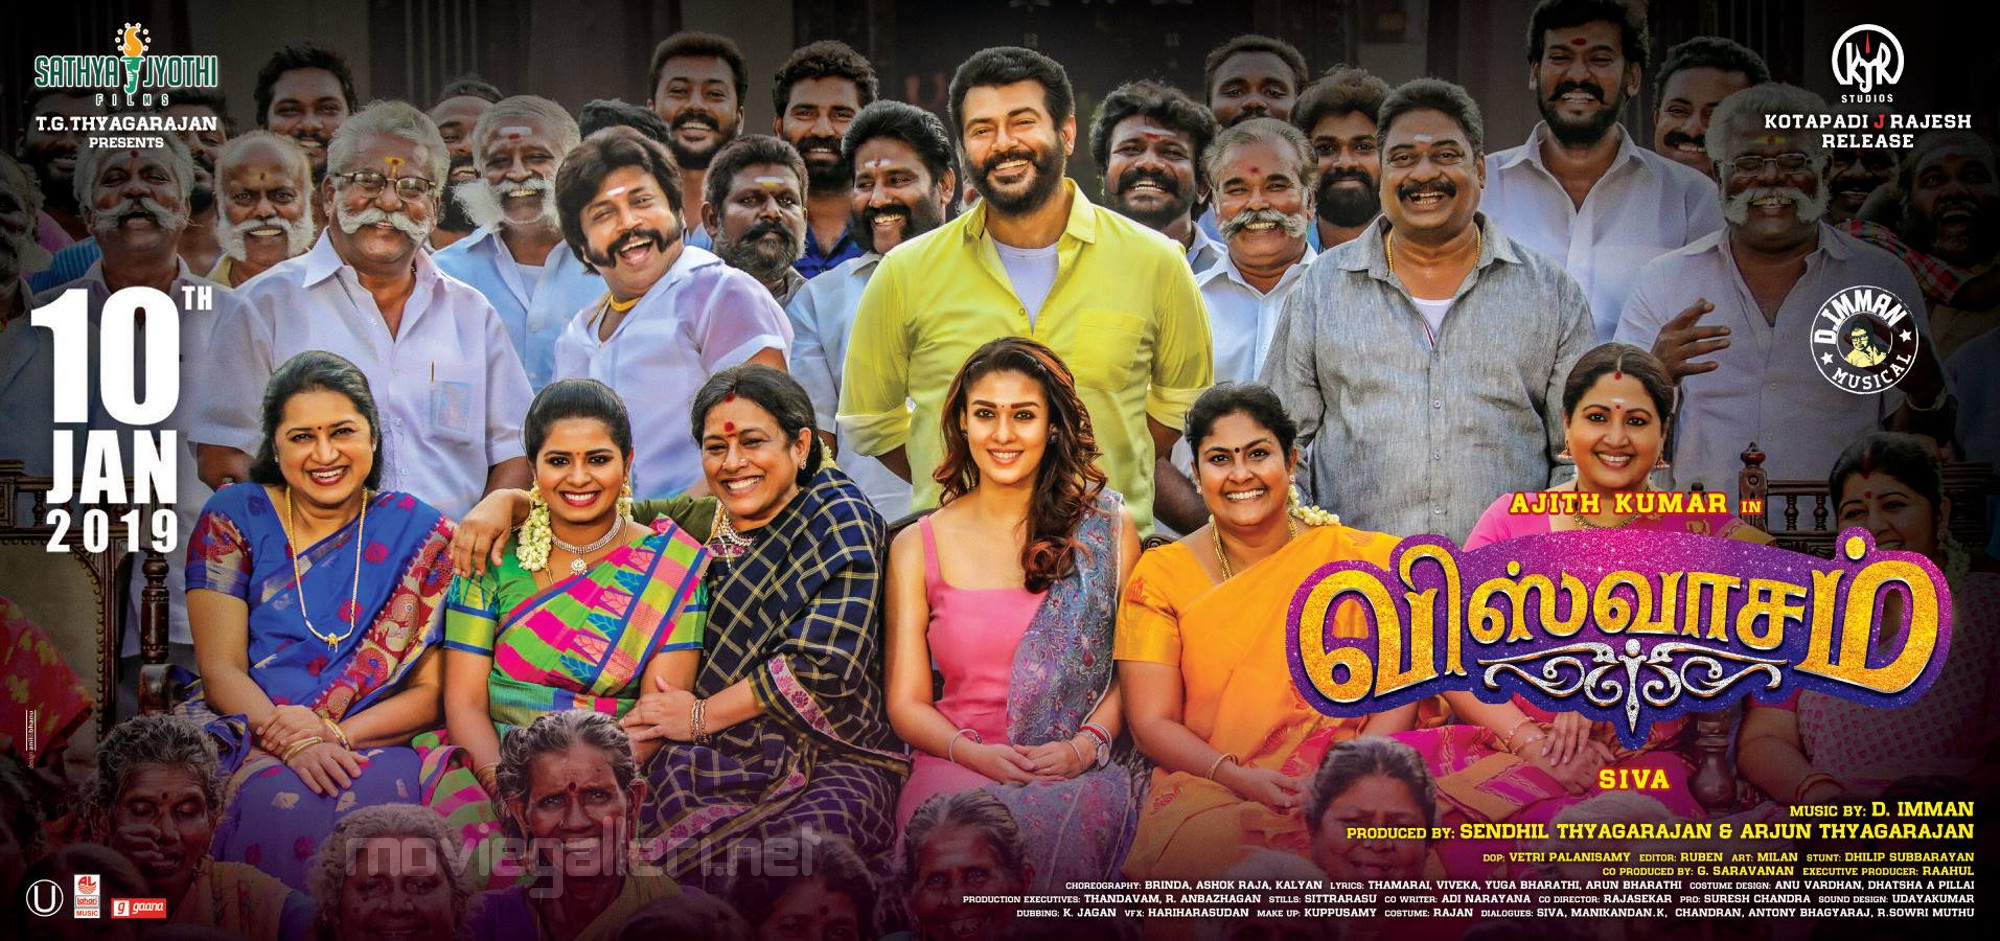 Nayanthara Ajith Viswasam Release Date 10 Jan 2019 Wallpapers HD